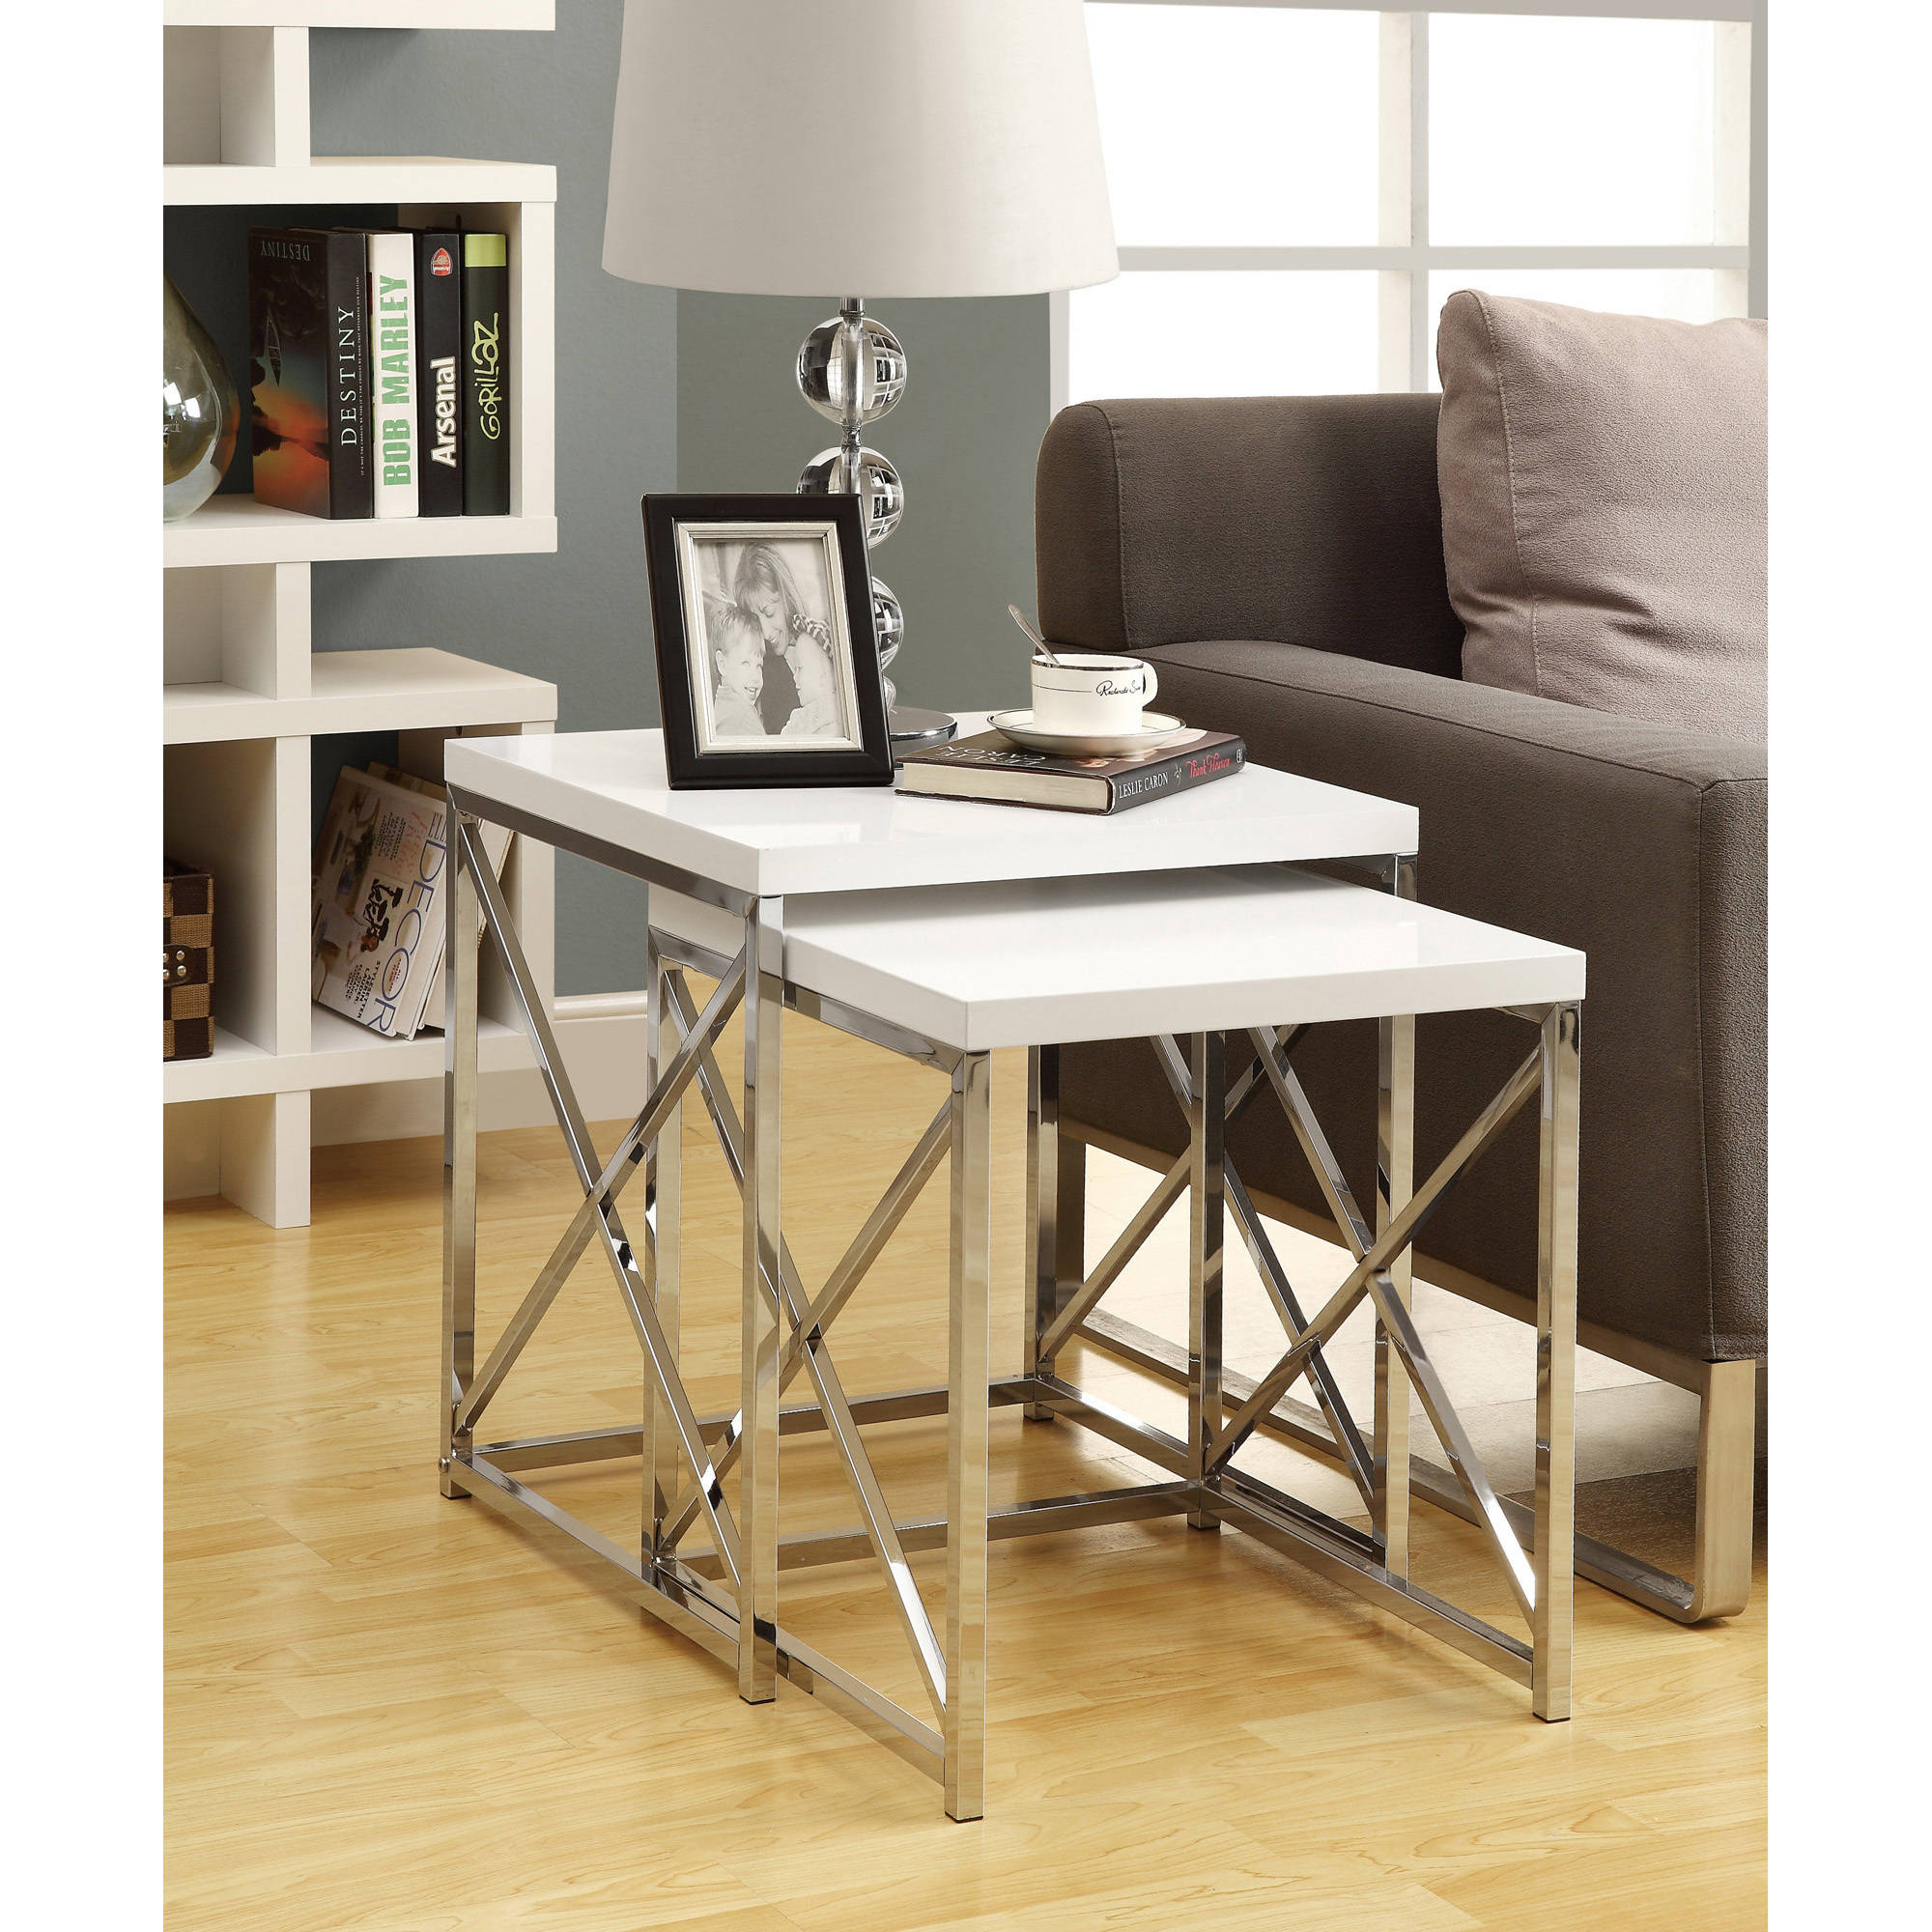 Monarch Nesting Table 2Pcs Set Glossy White Chrome Metal